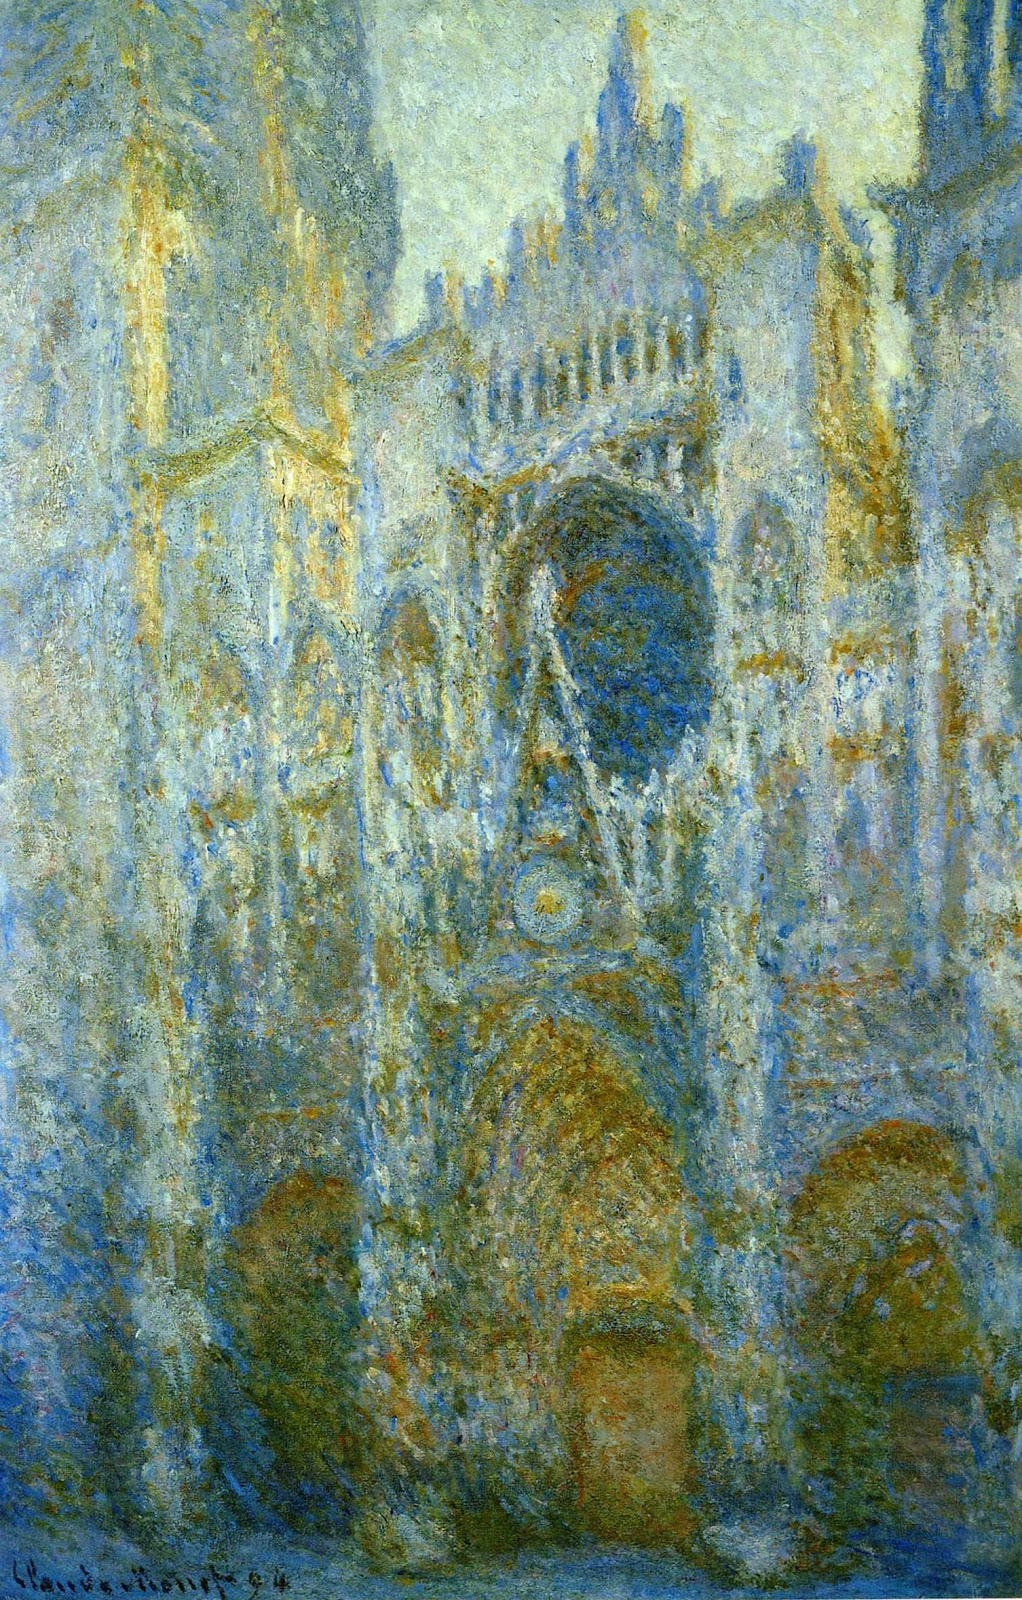 Claude Monet | The Rouen Cathedral - 657.3KB